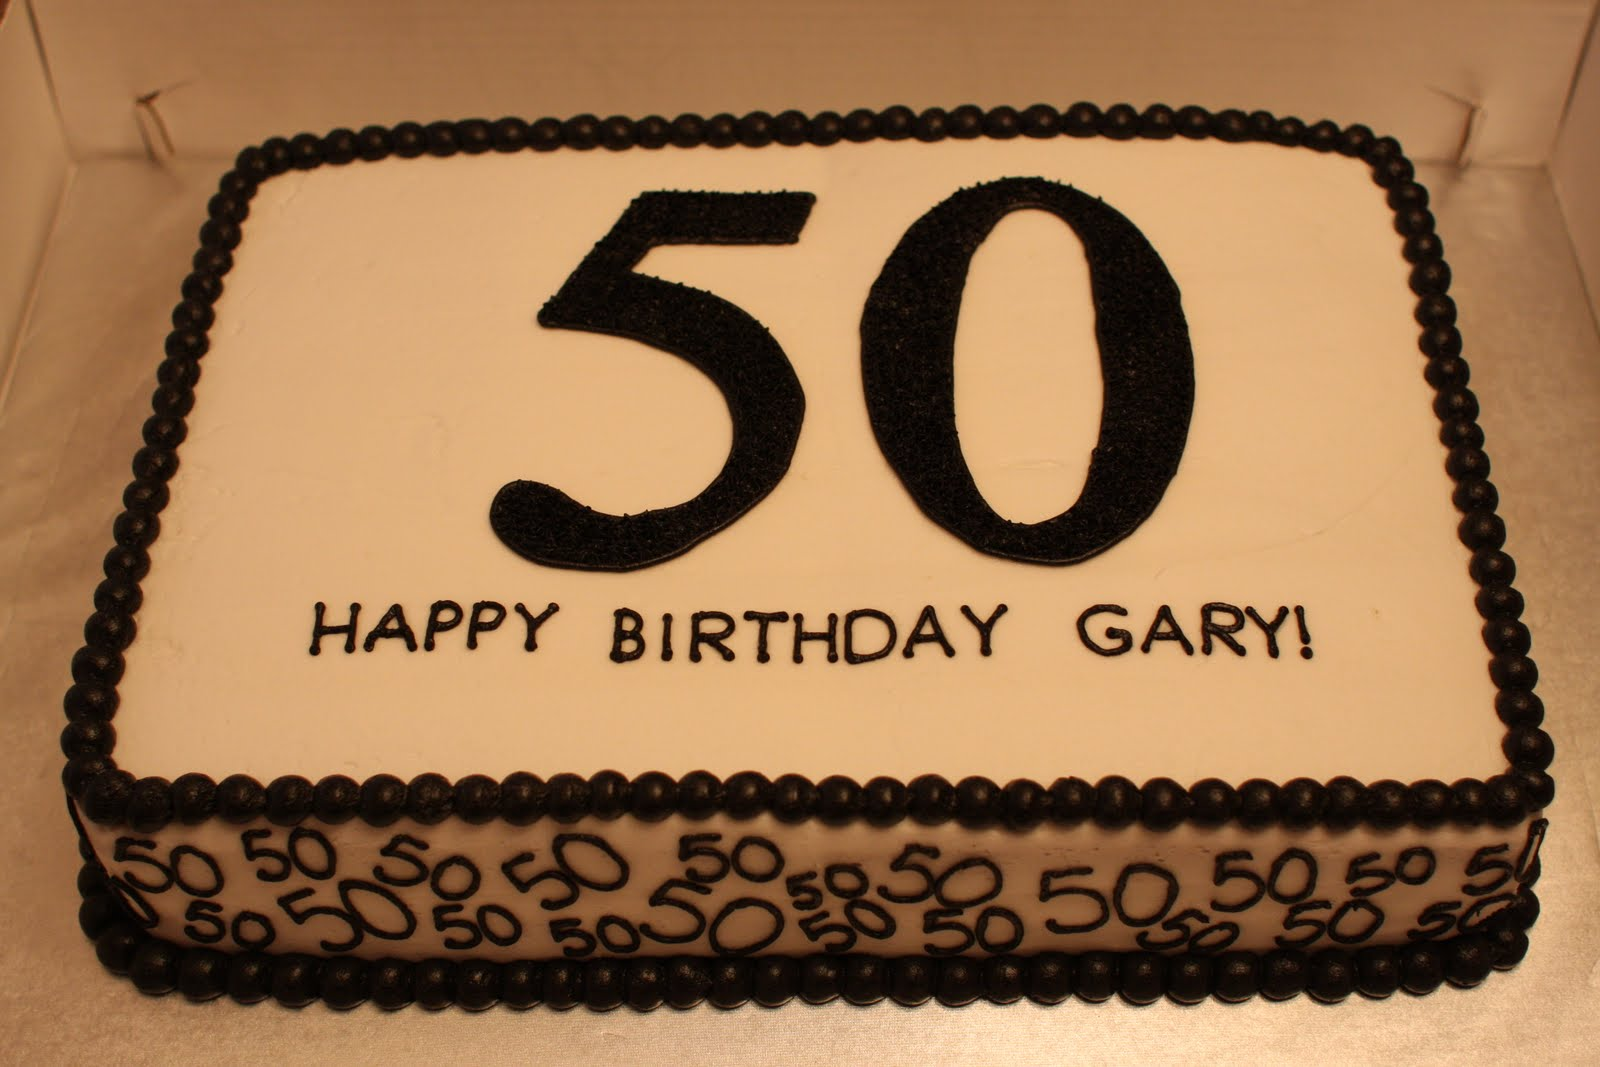 50th Birthday Sheet Cake Decorations Him